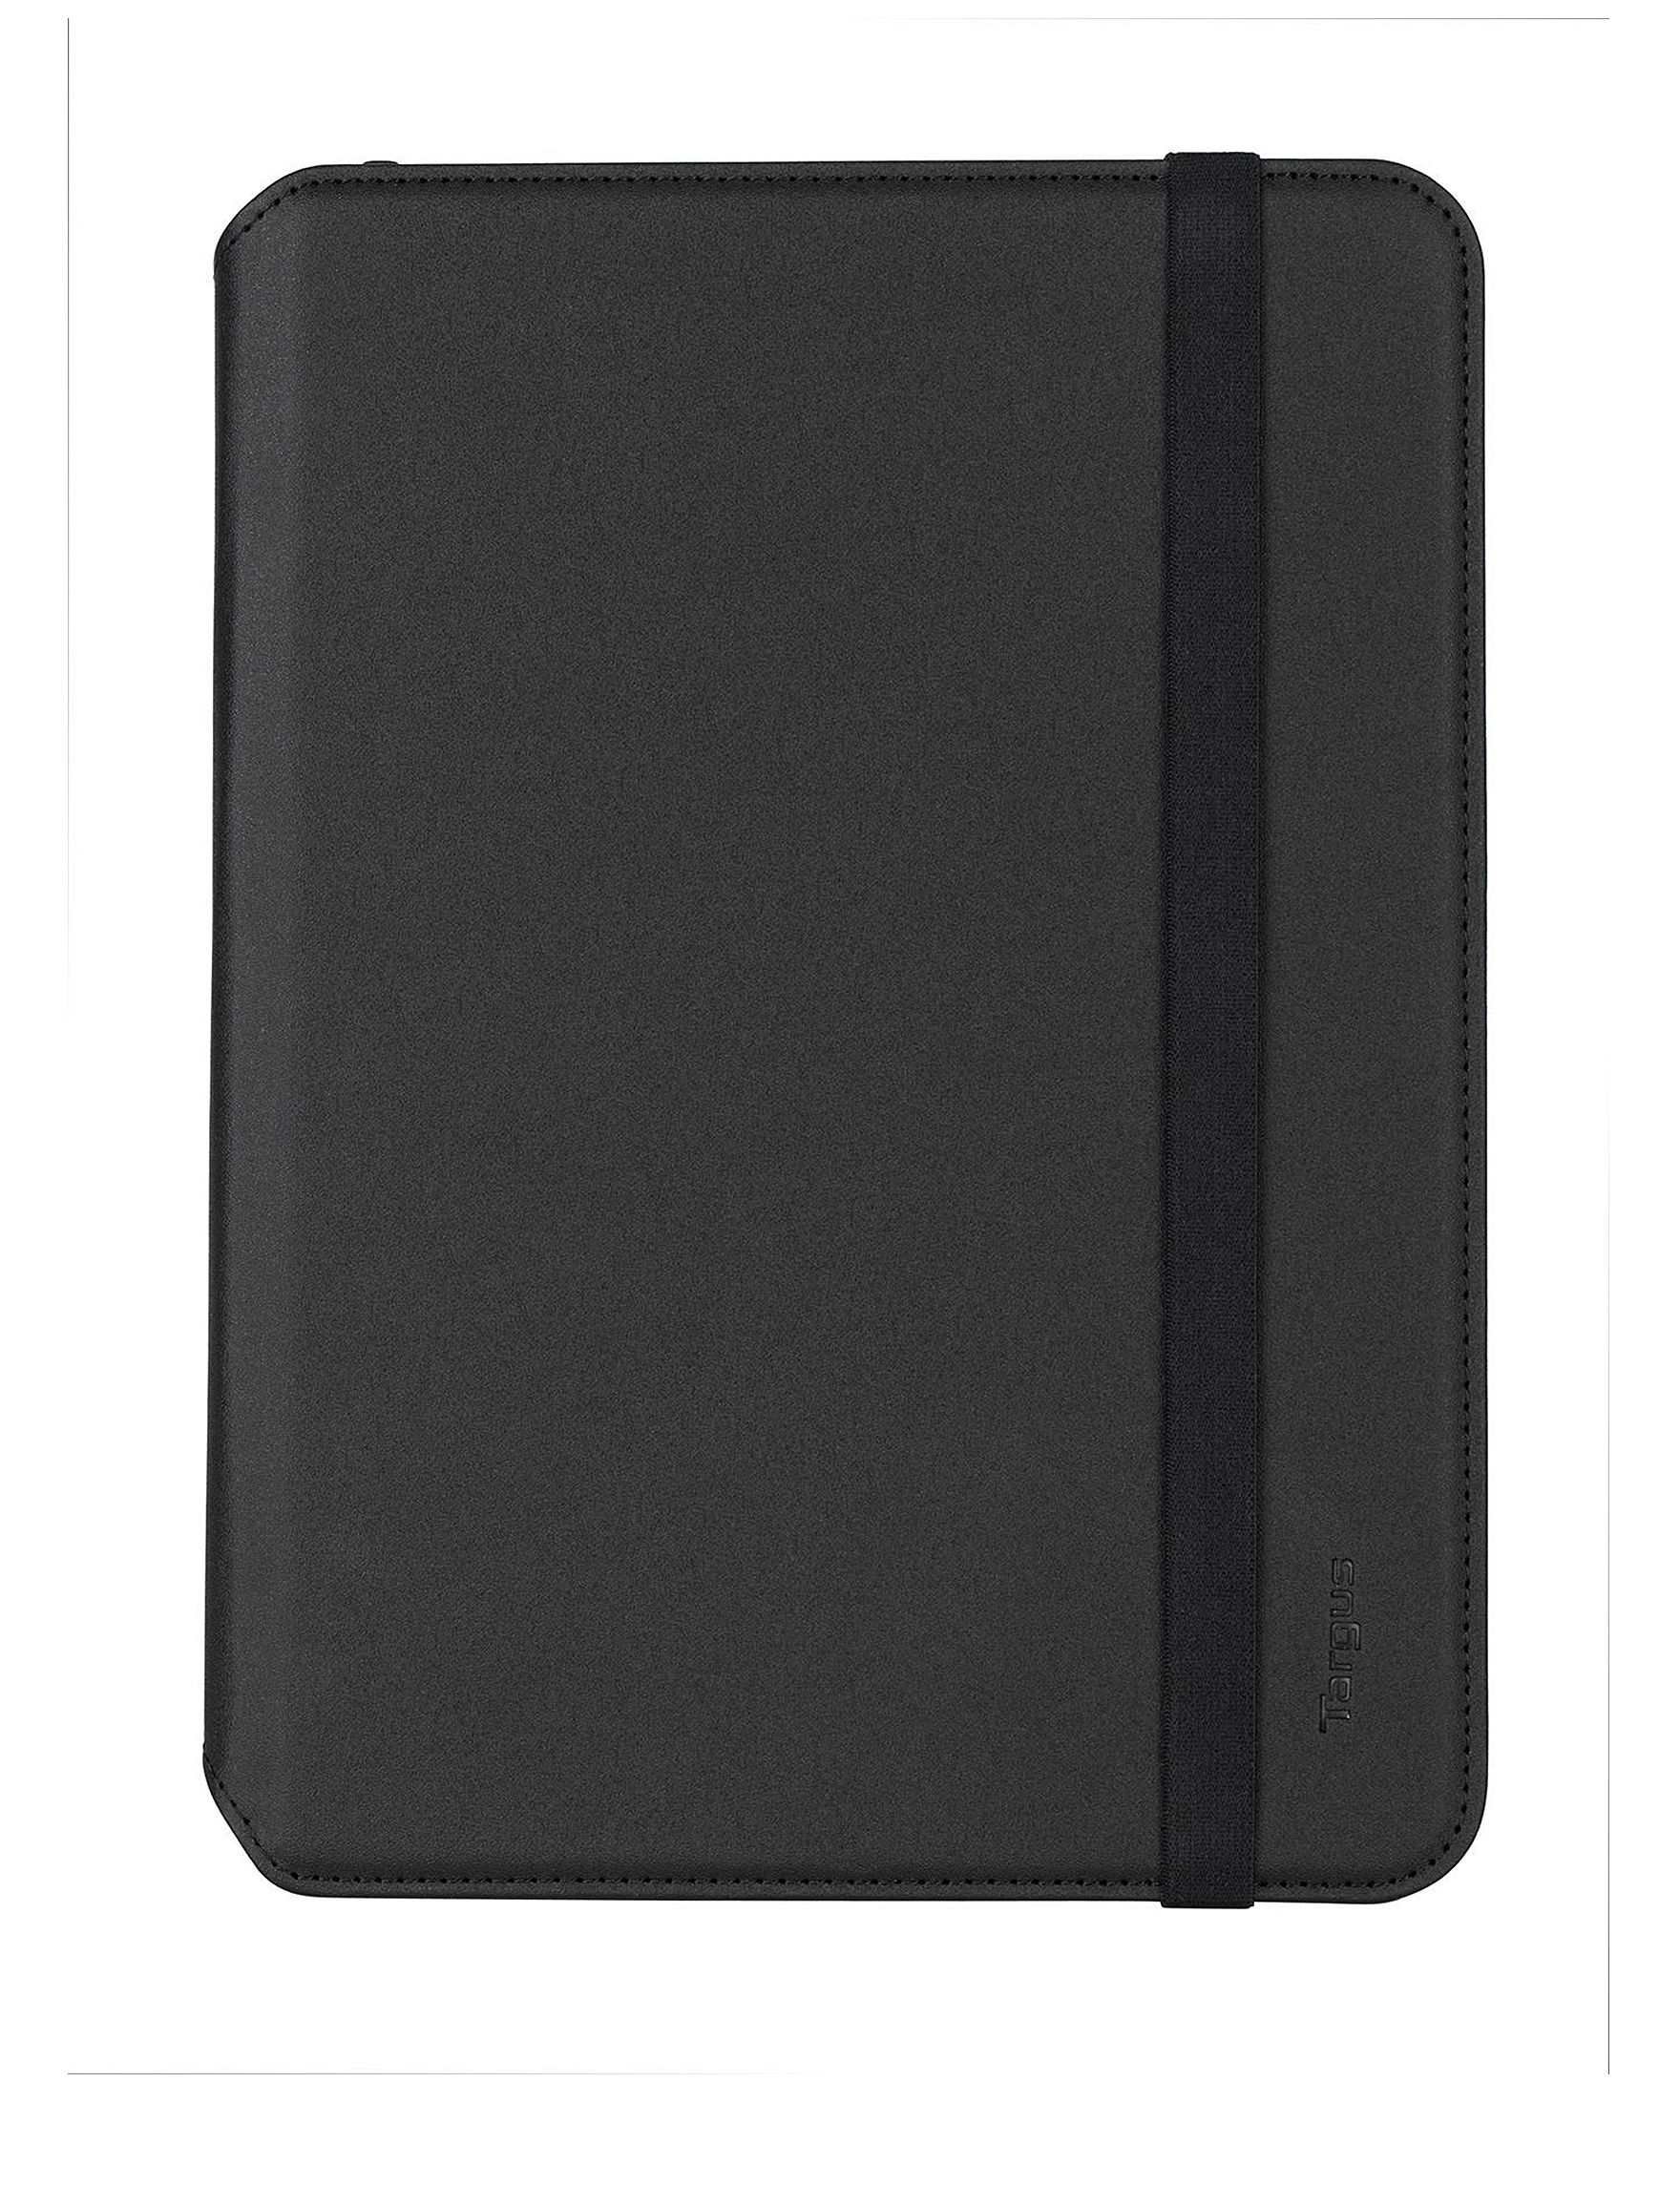 Targus Black Cases & Covers Tech Accessories